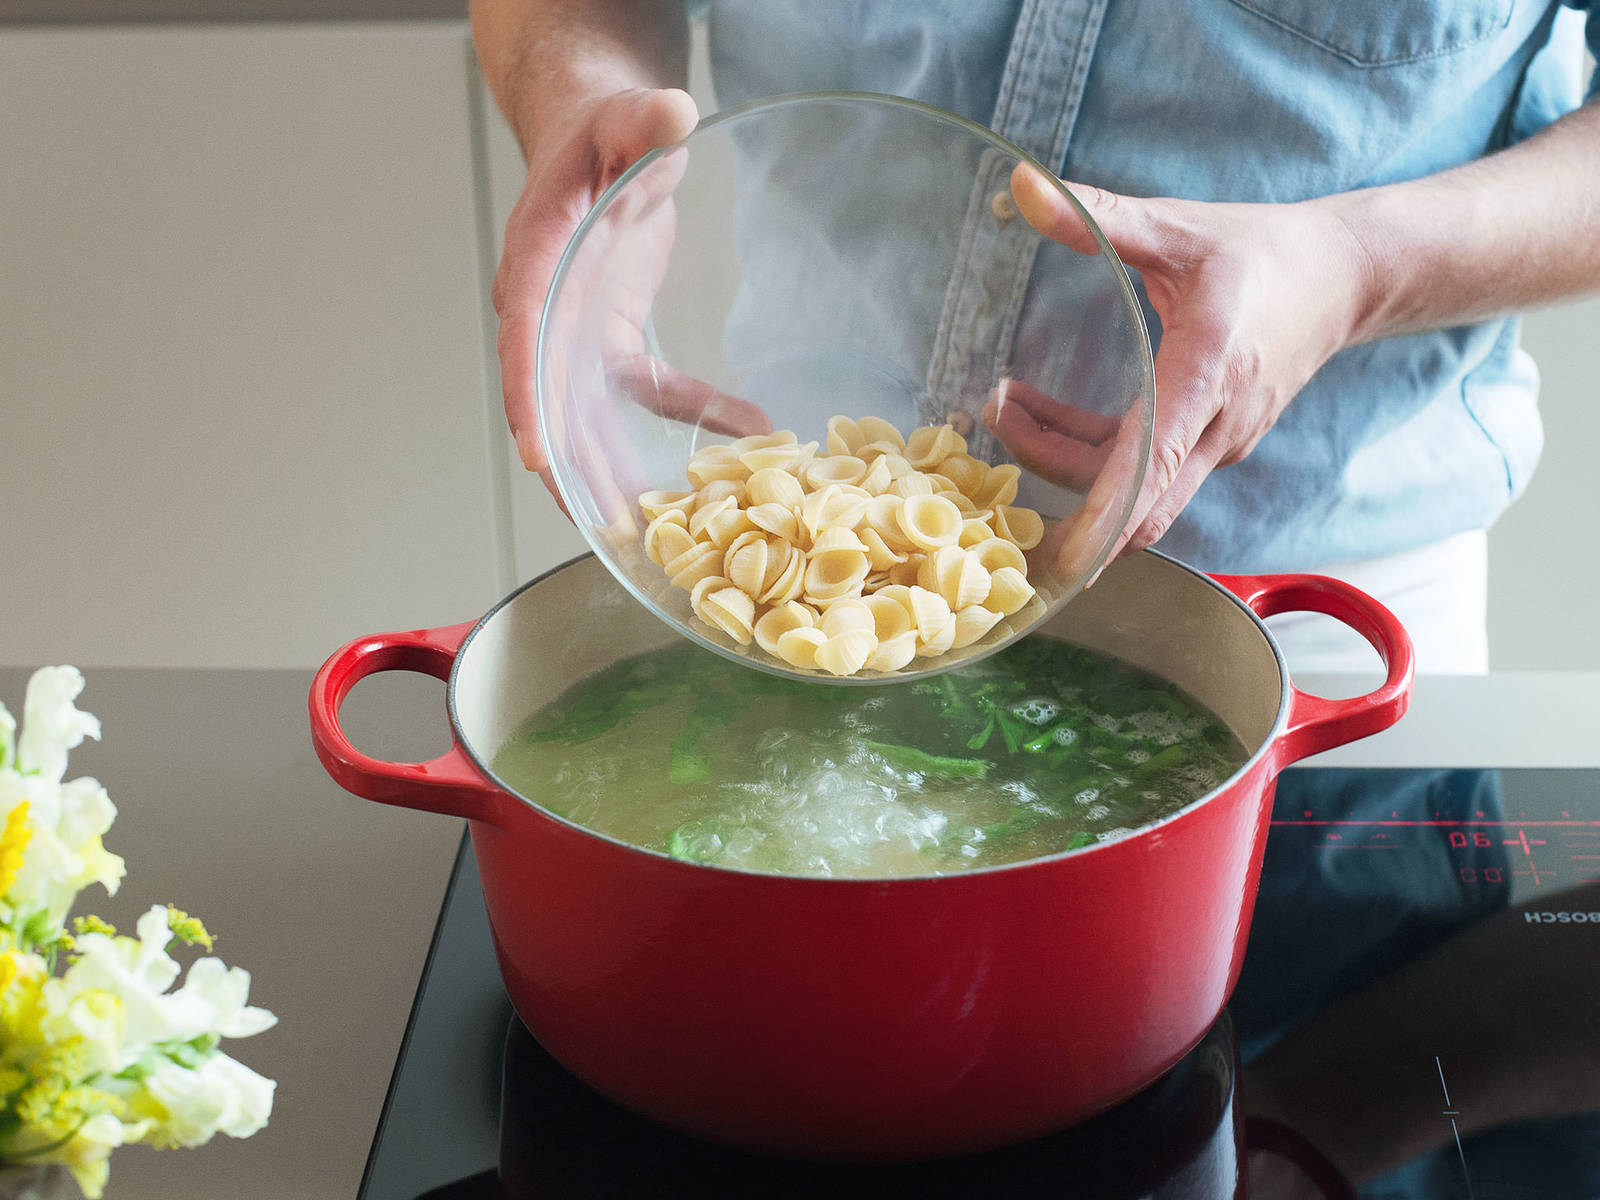 Add orecchiette and cook, according to package instructions, for approx. 8 – 10 min. until al dente. In the remaining 2 – 3 min. of cooking time, add florets. Then drain pasta and rapini and set aside.